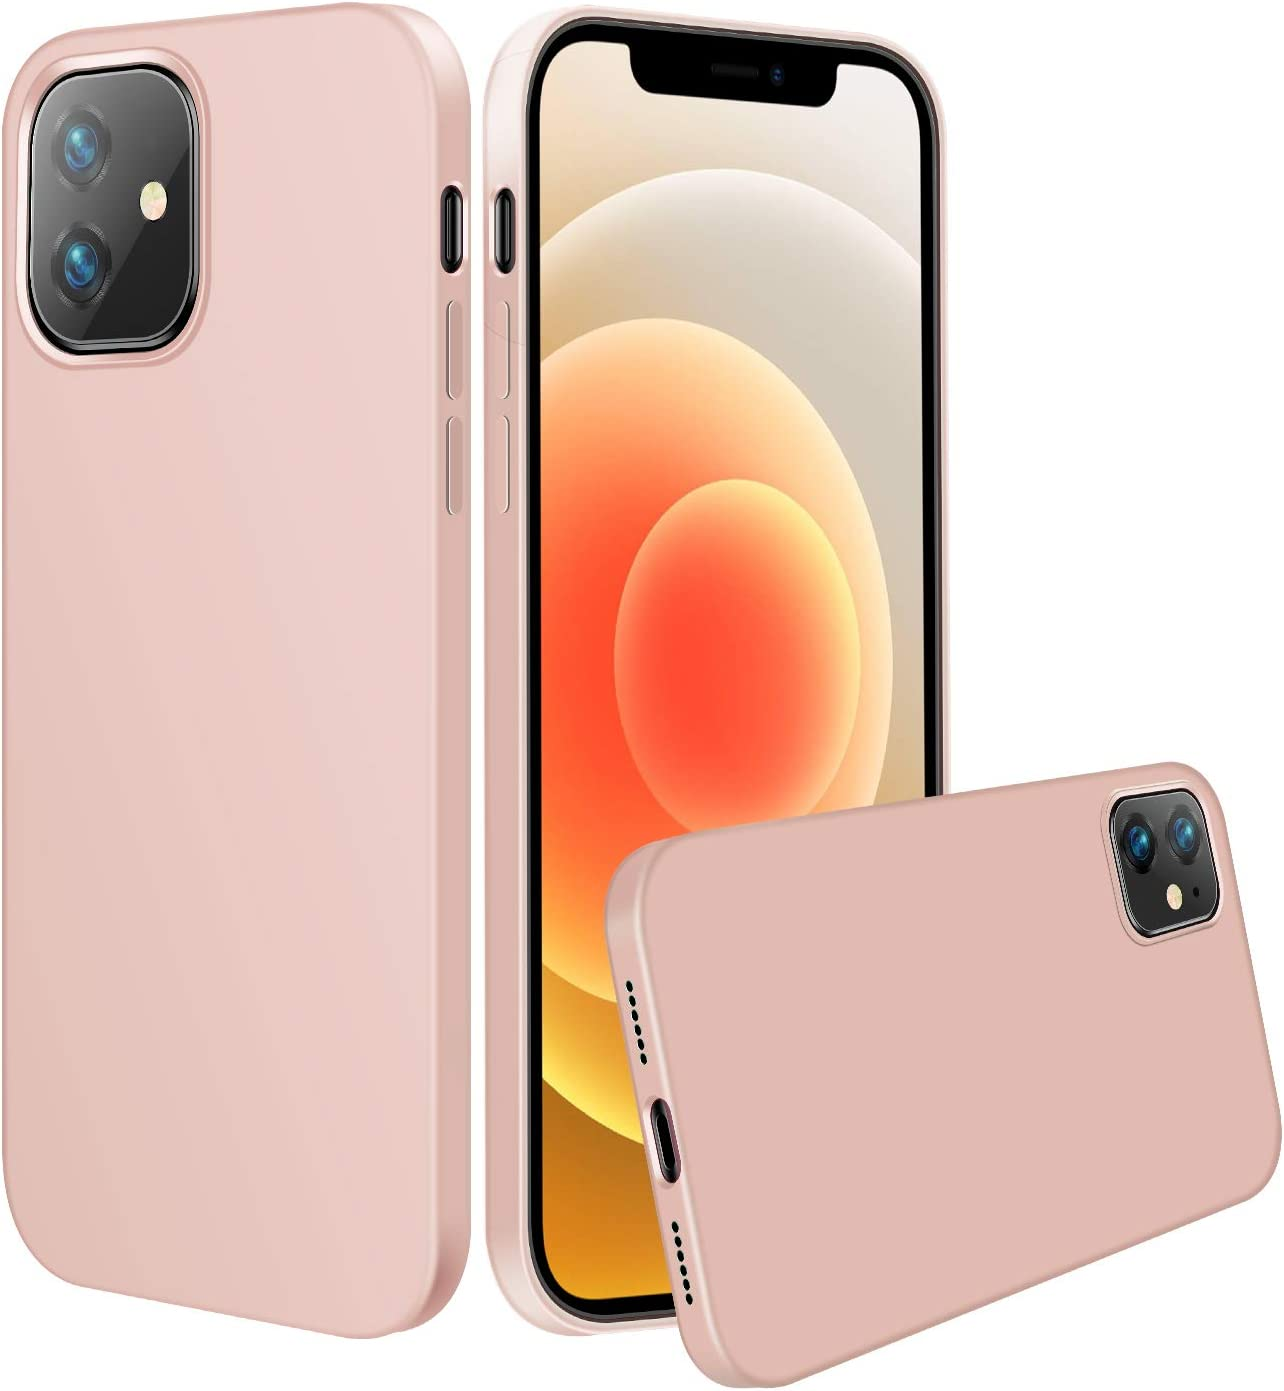 LZEB Silicone Case Compatible with iPhone 12 Mini Case 5.4 inch 2020, Liquid Silicone Phone Case (with Microfiber Lining) Designed for iPhone 12 Mini (Pink Sand)